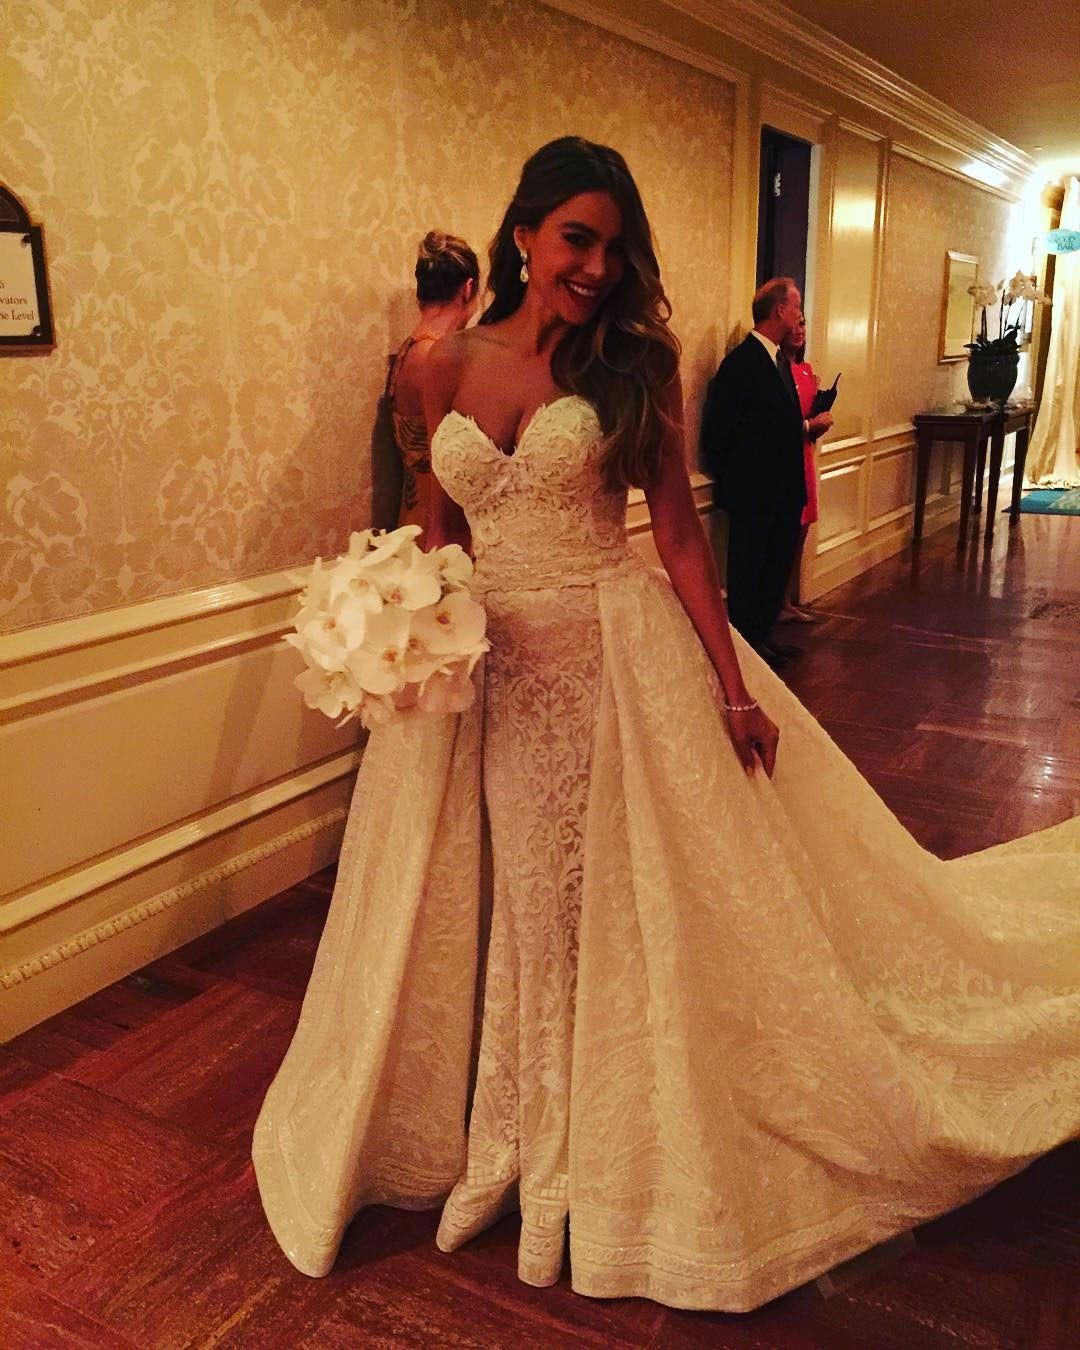 Sofia Vergara's wedding dress